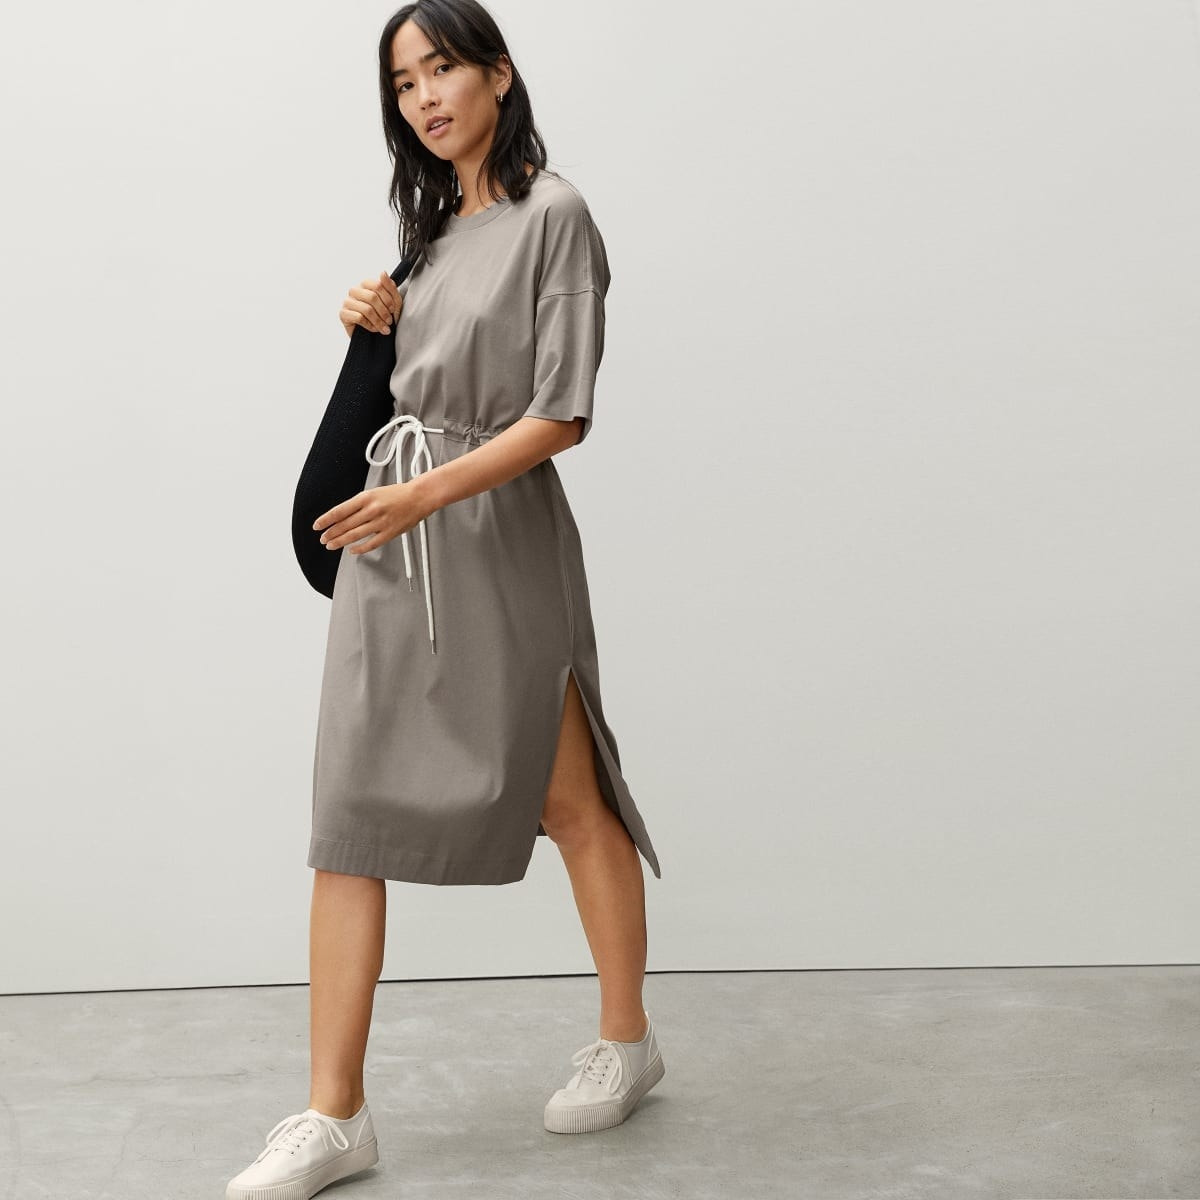 model in the gray short-sleeve dress with slits at the side